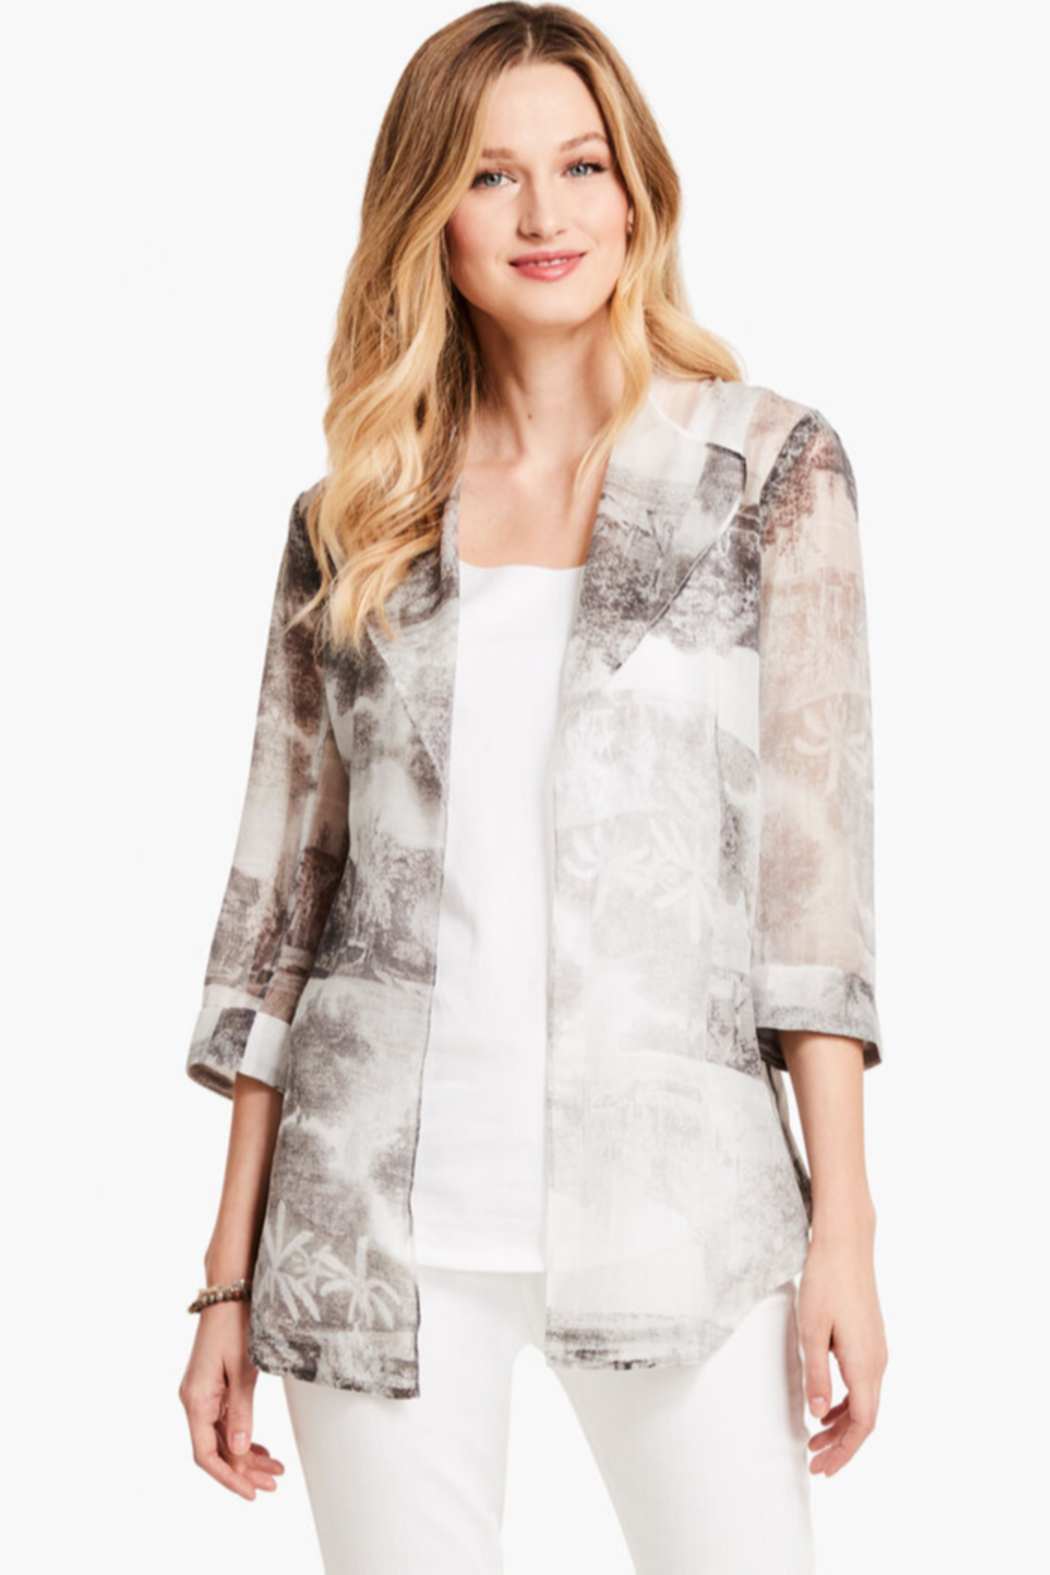 Nic + Zoe Sheer, lightweight Toile Memory Cardigan, 3/4 sleeves. - Front Cropped Image